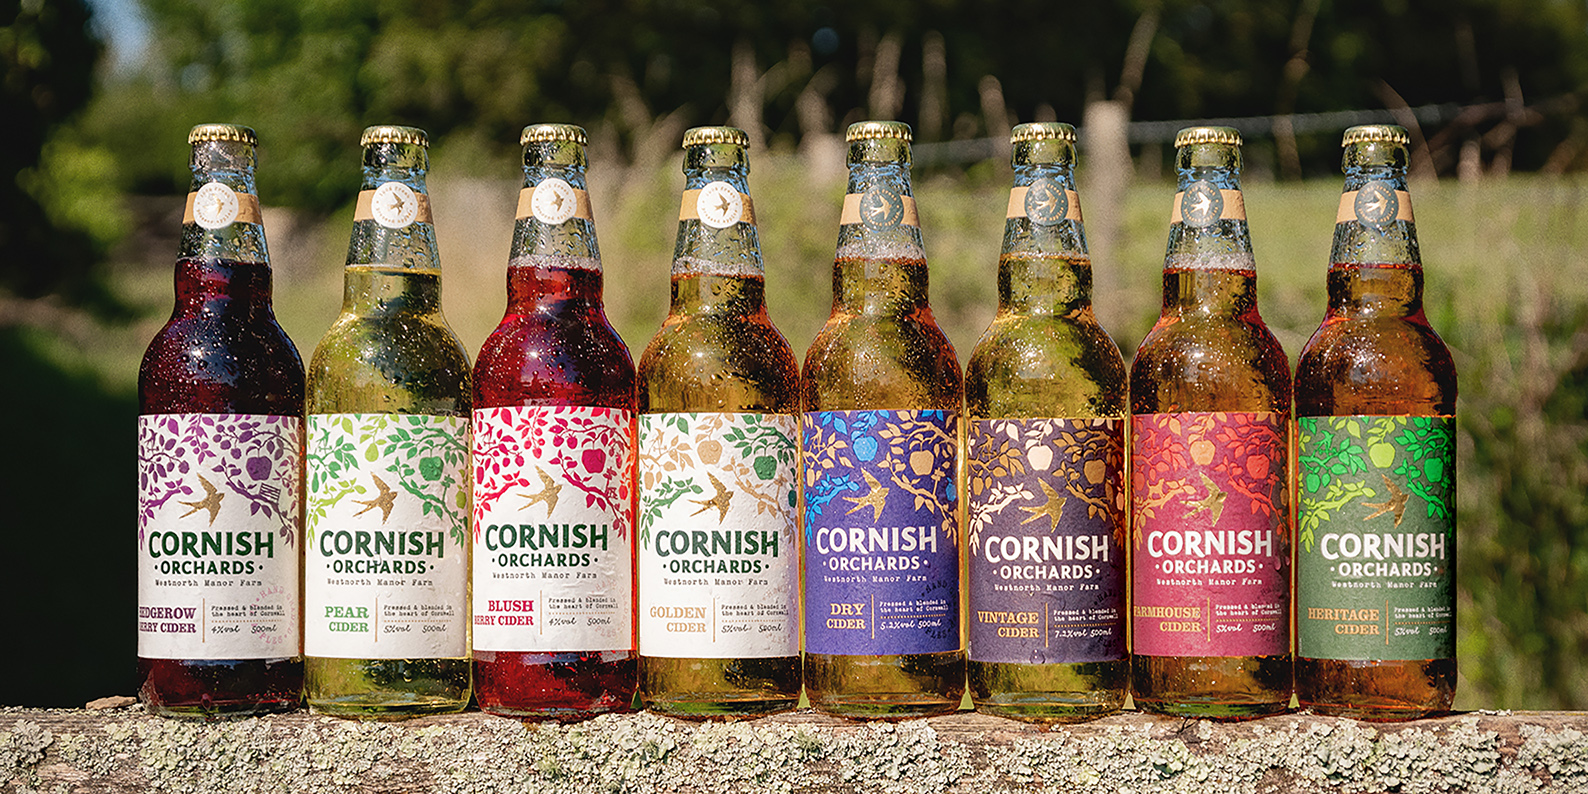 Cornish Orchards Celebrates Its Home and Heritage with New Identity by Outlaw